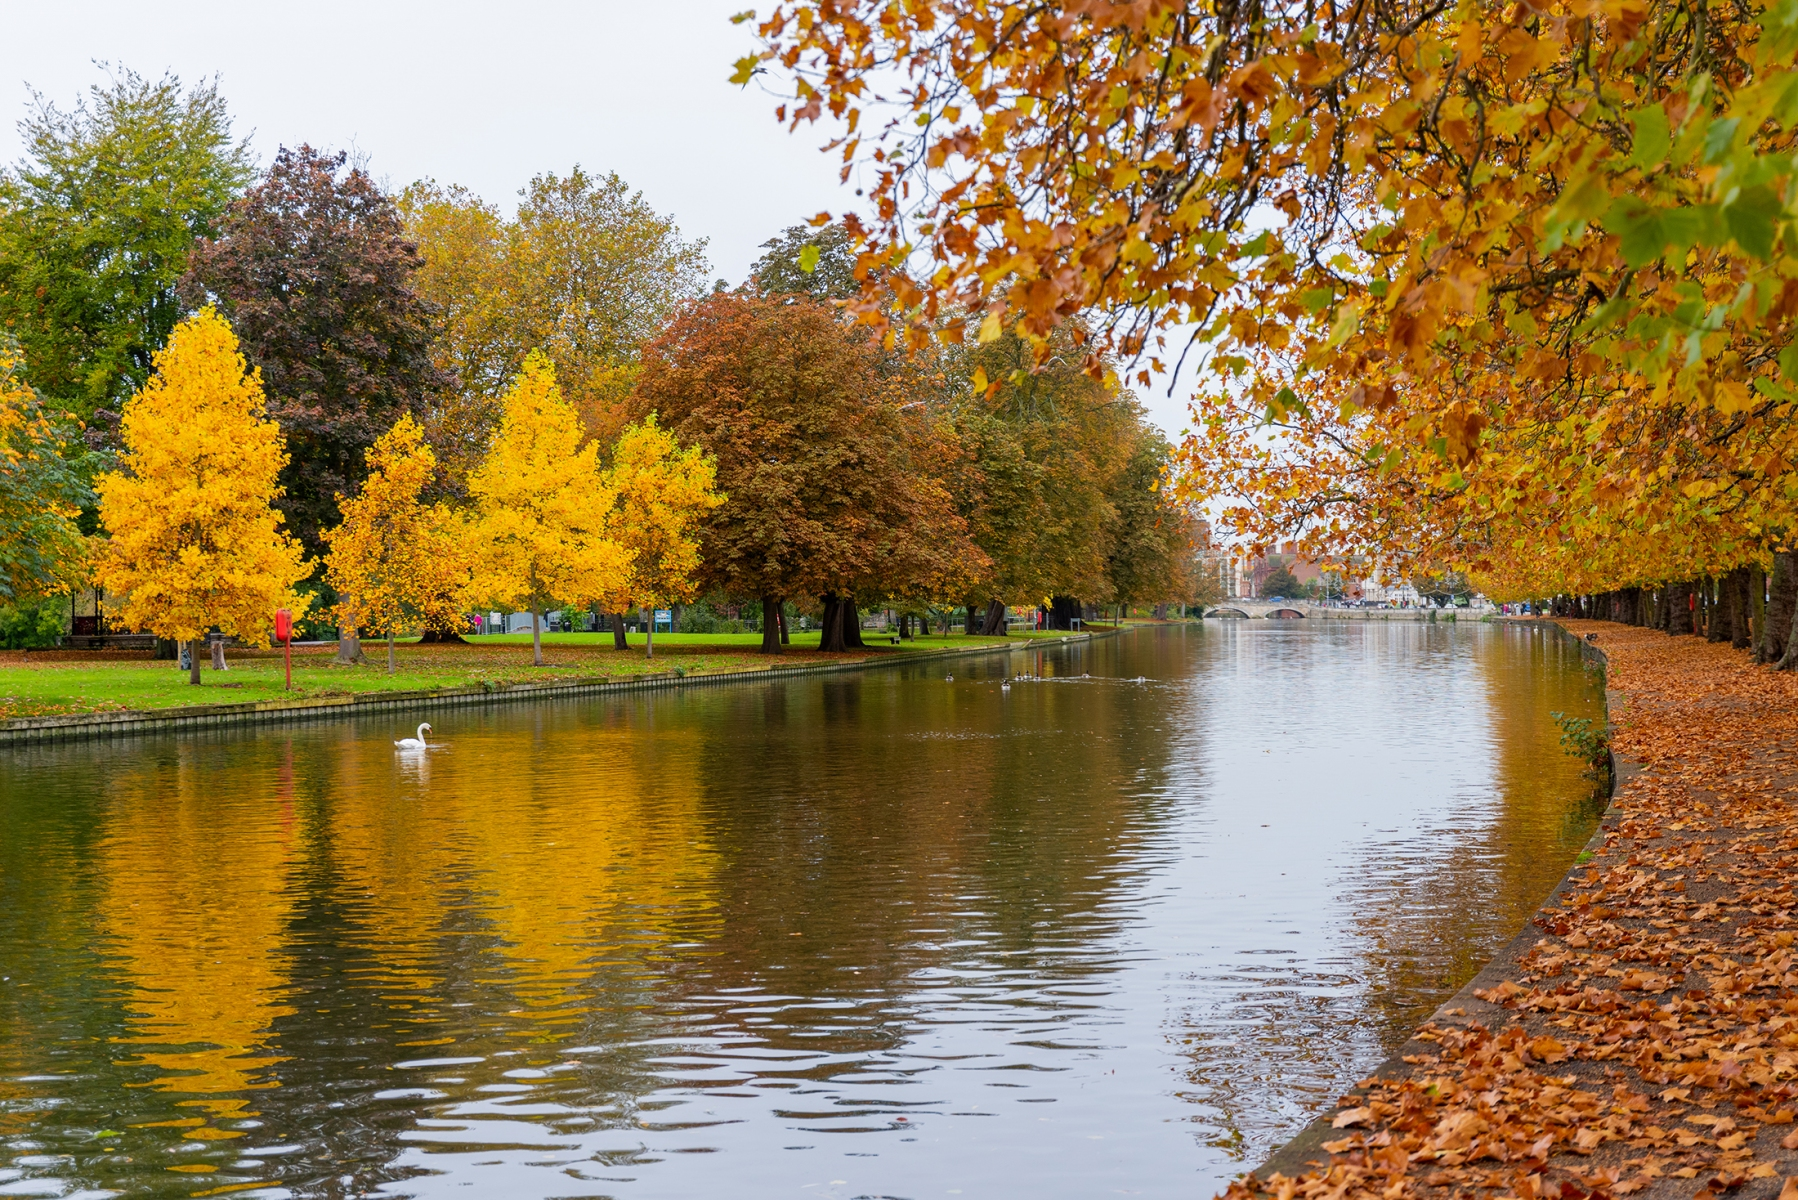 River Great Ouse, The Embankment, Bedford in Autumn